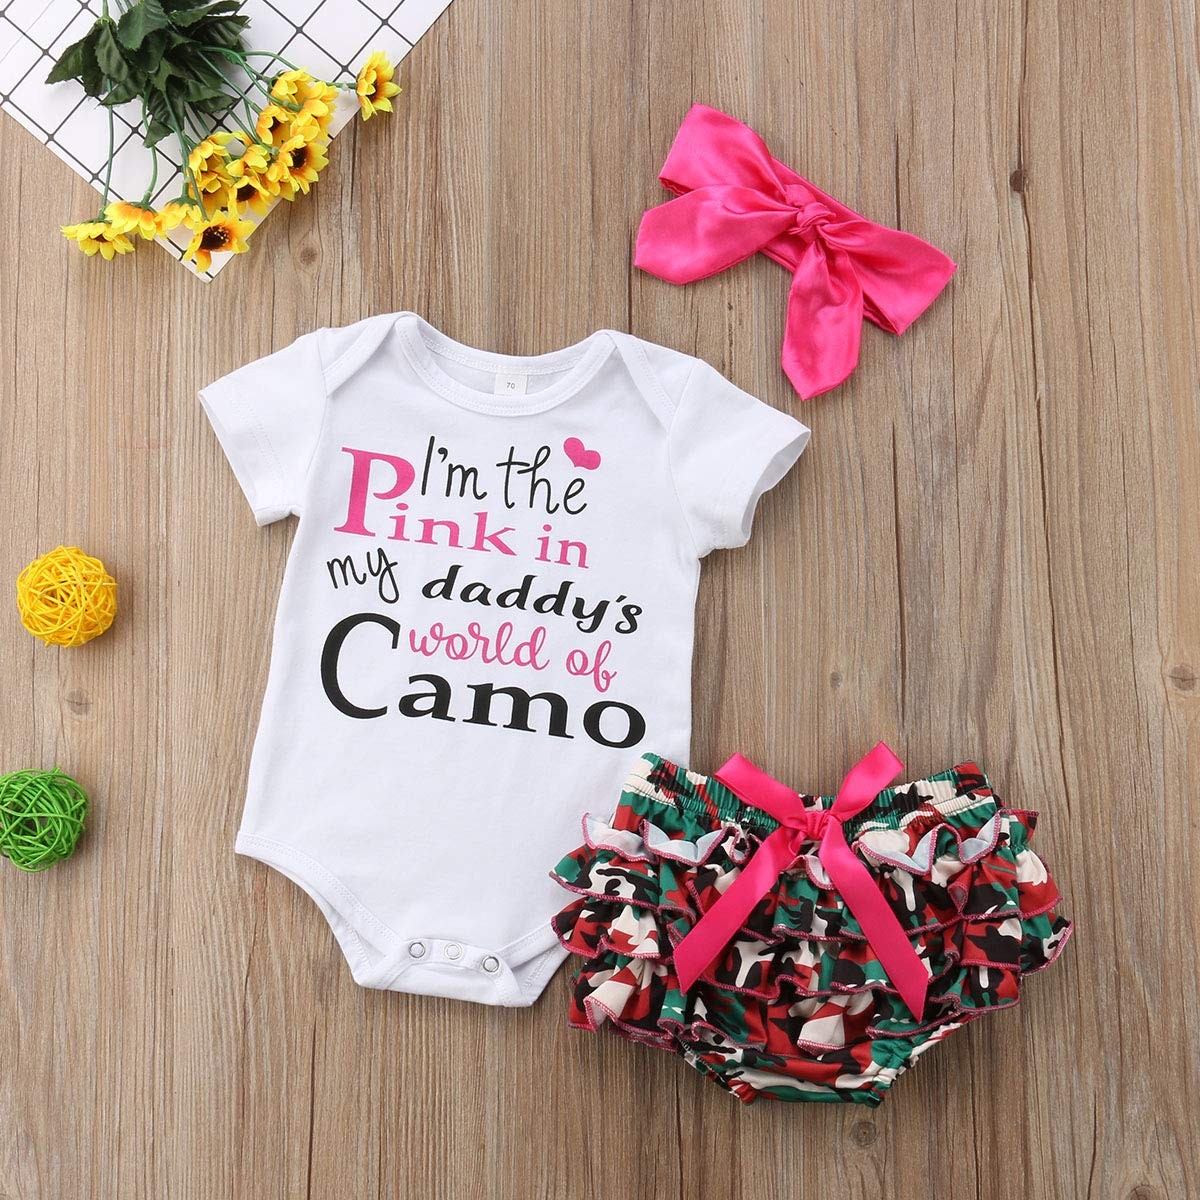 West Sweety 3Pcs Adorable Baby Girls Letter Print Romper Camo Short Bow Pink Headband